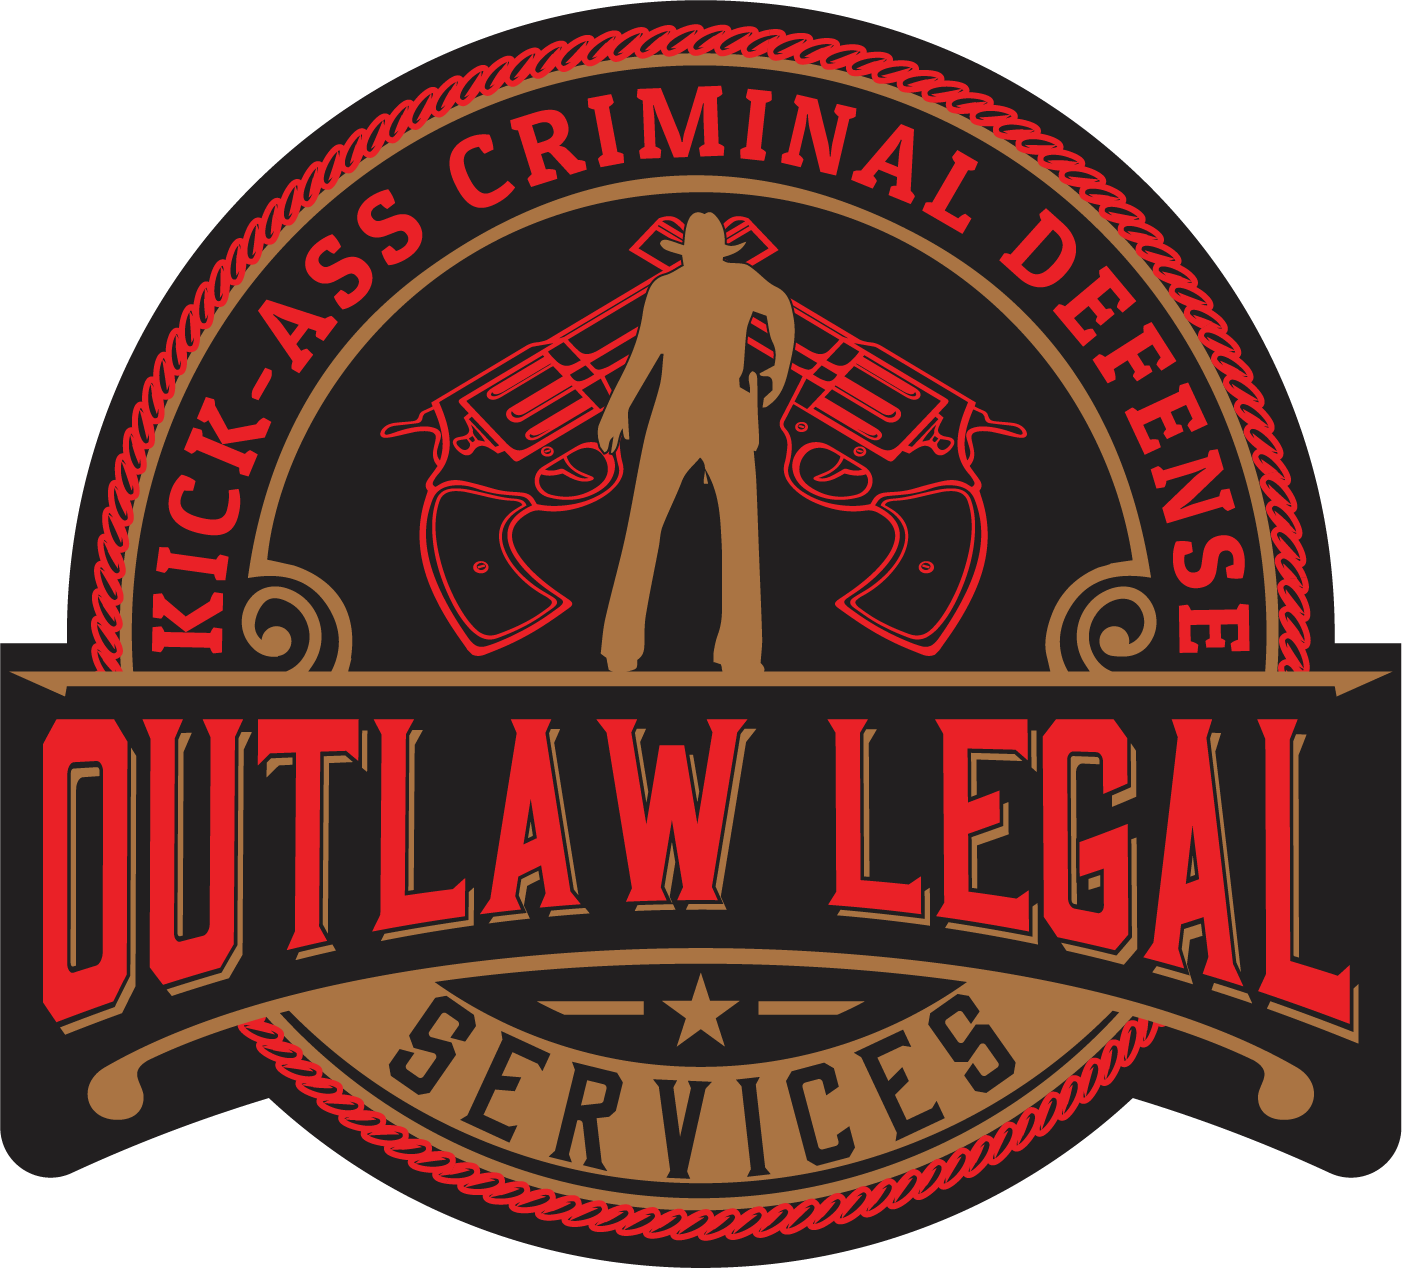 Outlaw Legal Services